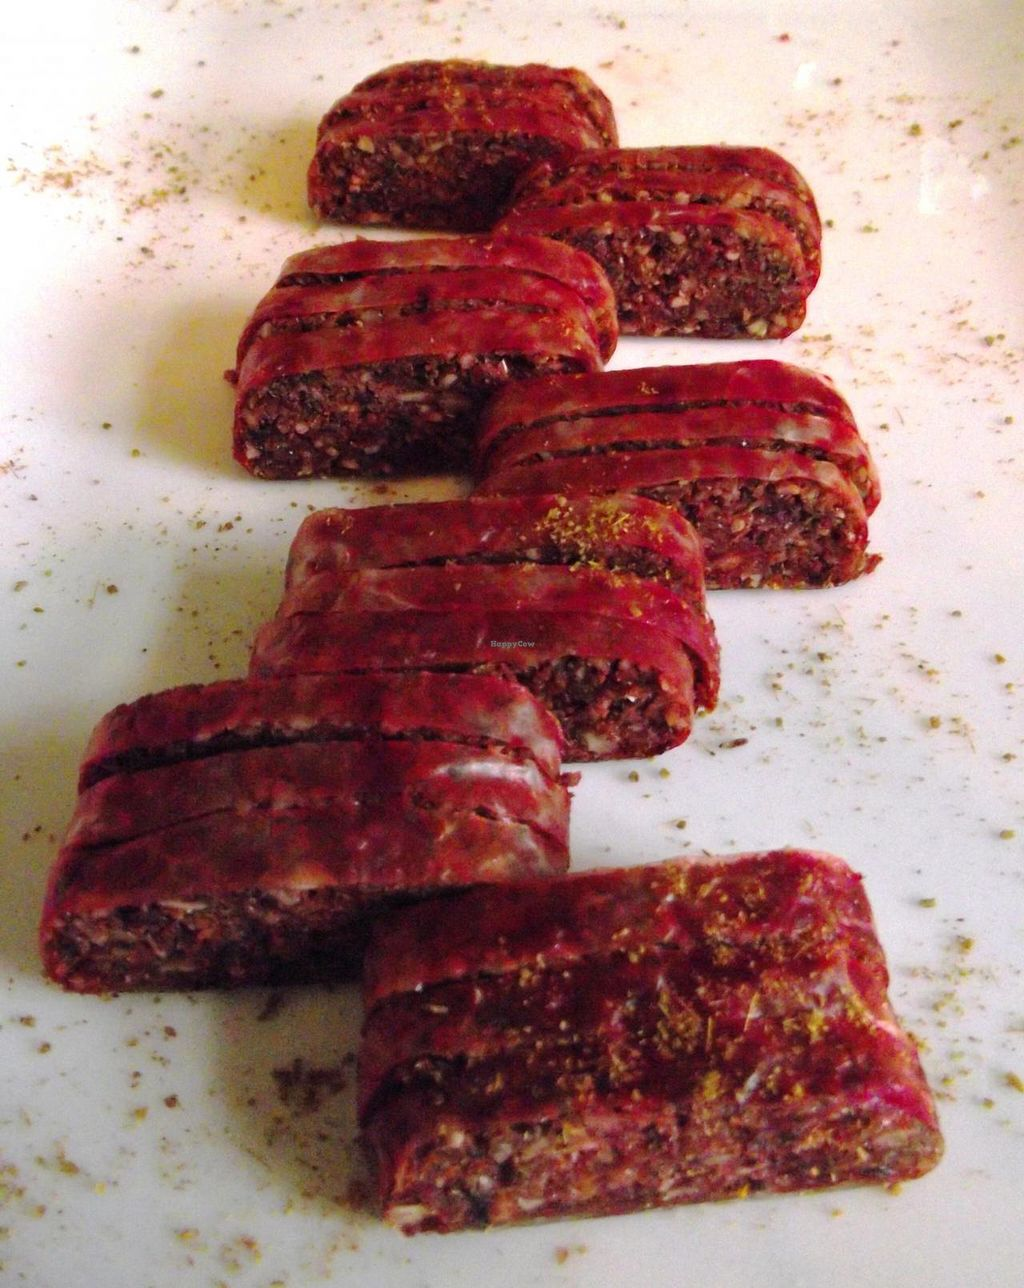 "Photo of Soul Kitchen  by <a href=""/members/profile/Joanna%20Karatsaneva"">Joanna Karatsaneva</a> <br/>Wine mezze - plant based dehydrated sausage  <br/> June 8, 2014  - <a href='/contact/abuse/image/40791/71629'>Report</a>"